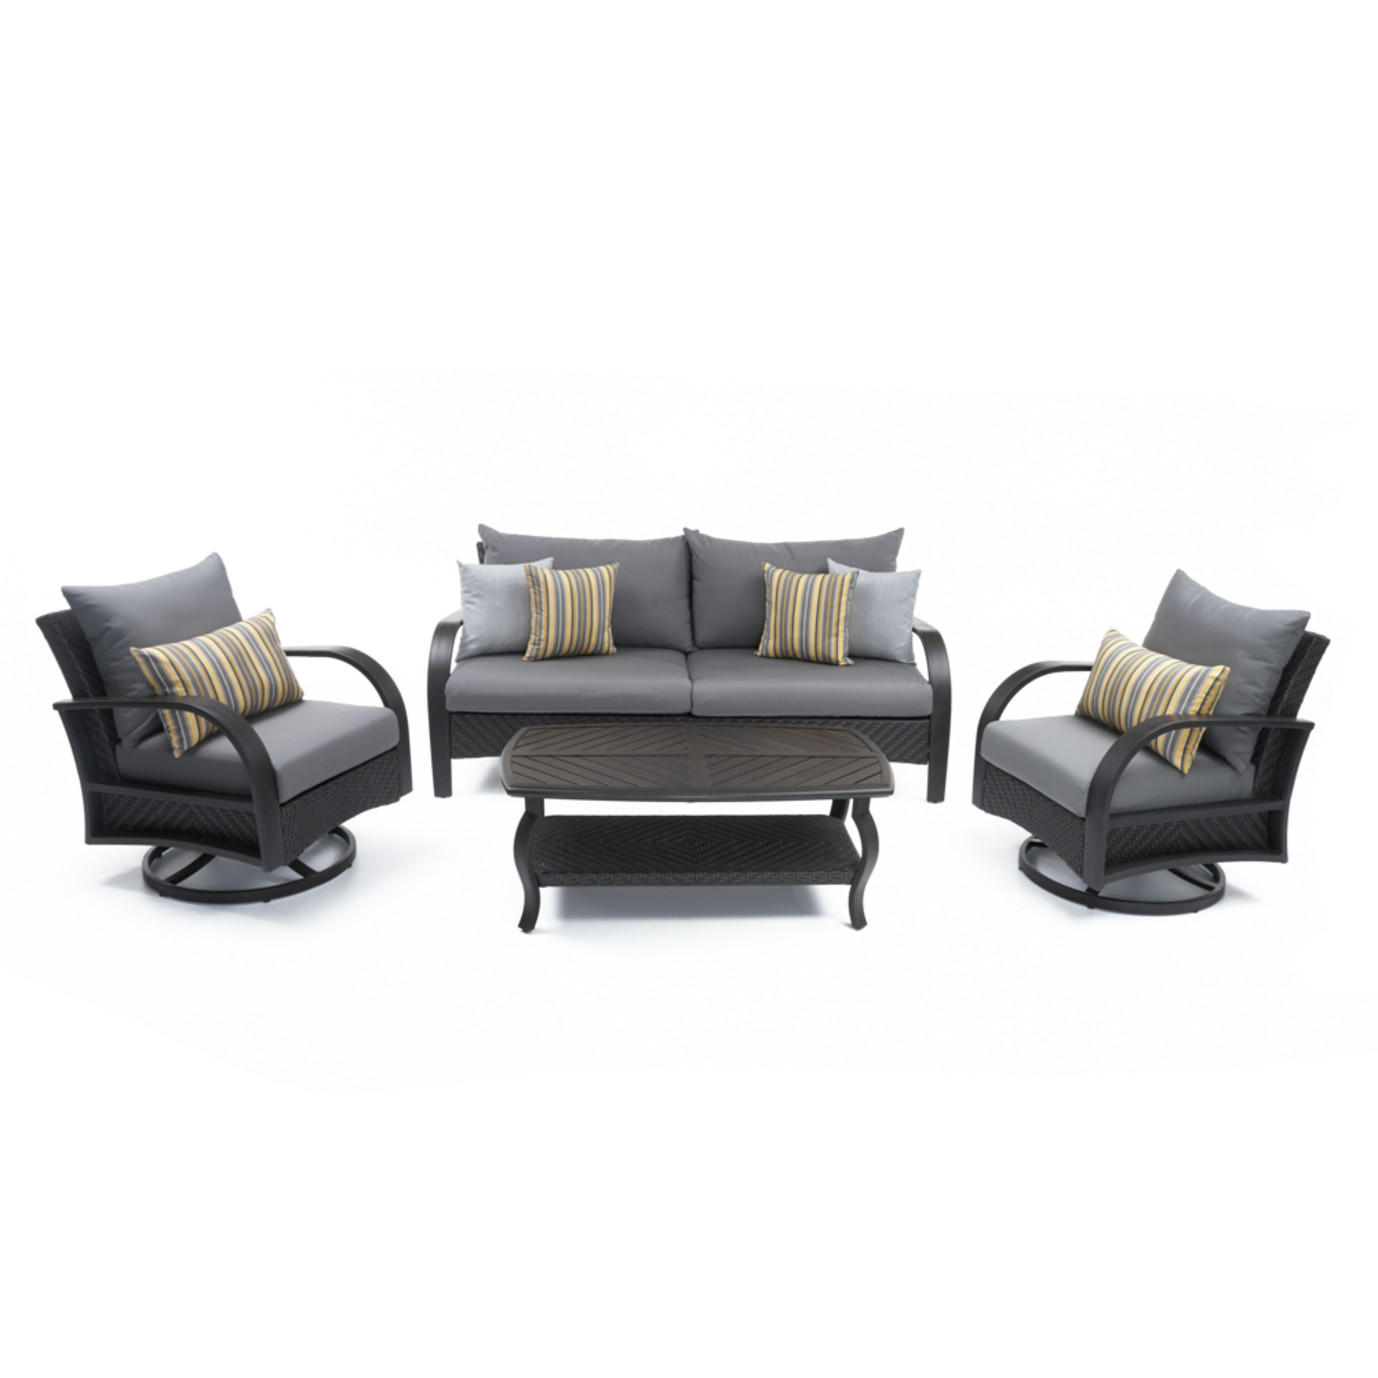 Barcelo™ 4pc Motion Club & Sofa Set - Charcoal Grey